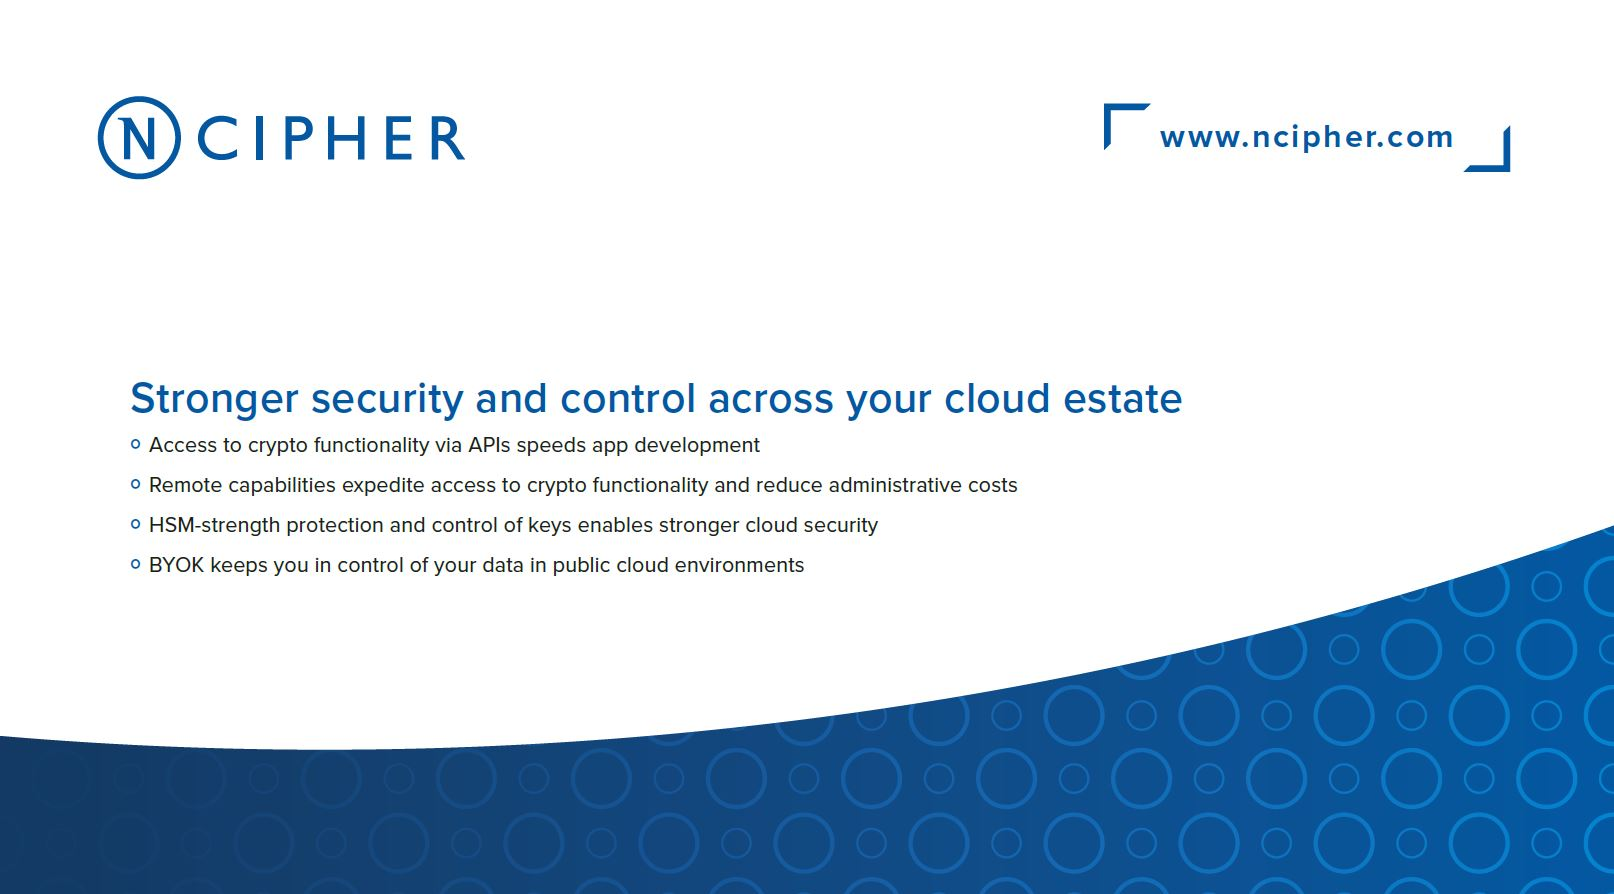 The Financial Services Industry's Need for Stronger Security & Control Across The Cloud